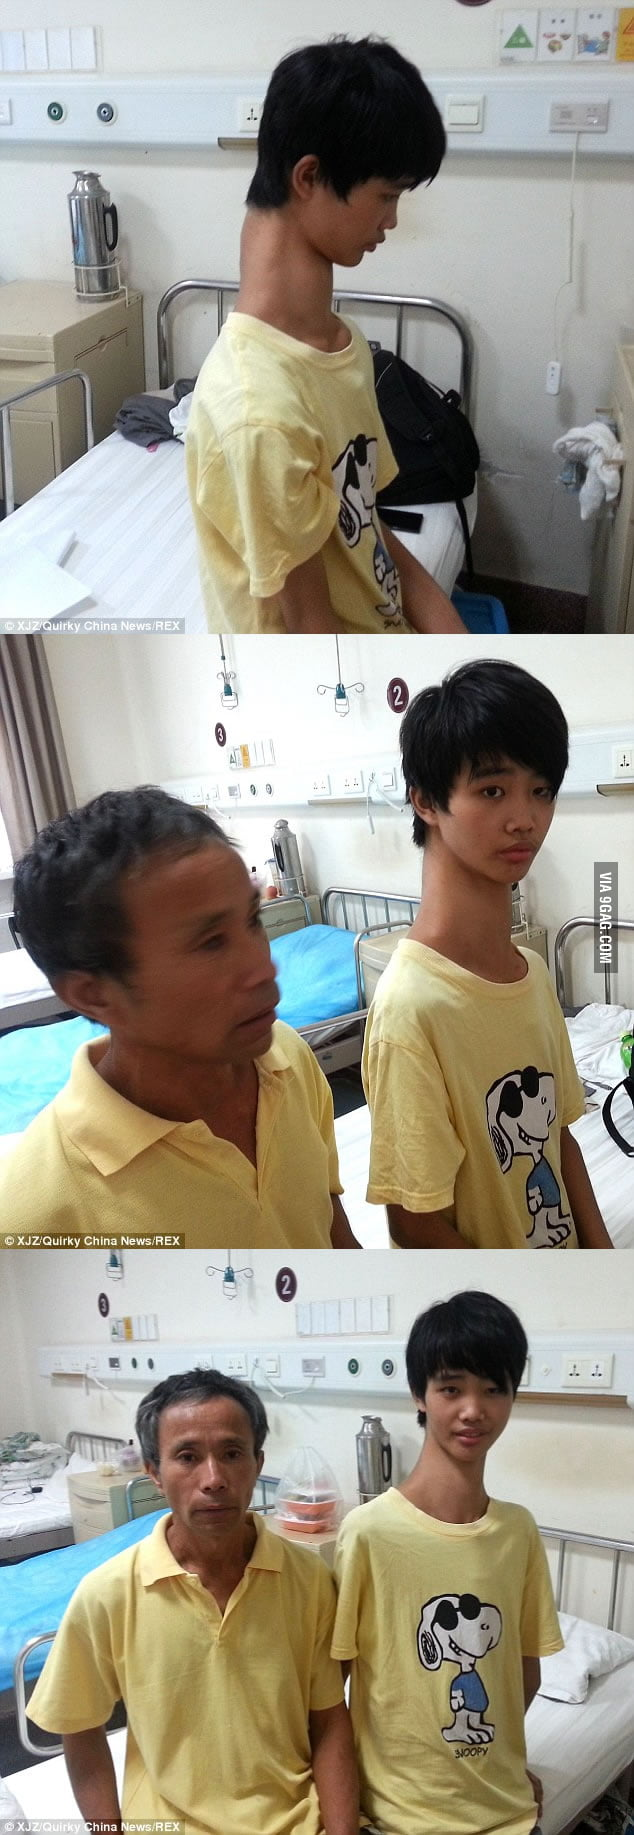 Chinese teenager Fu Wengui has Marfan syndrome, scoliosis, and three extra vertebrae in his neck.